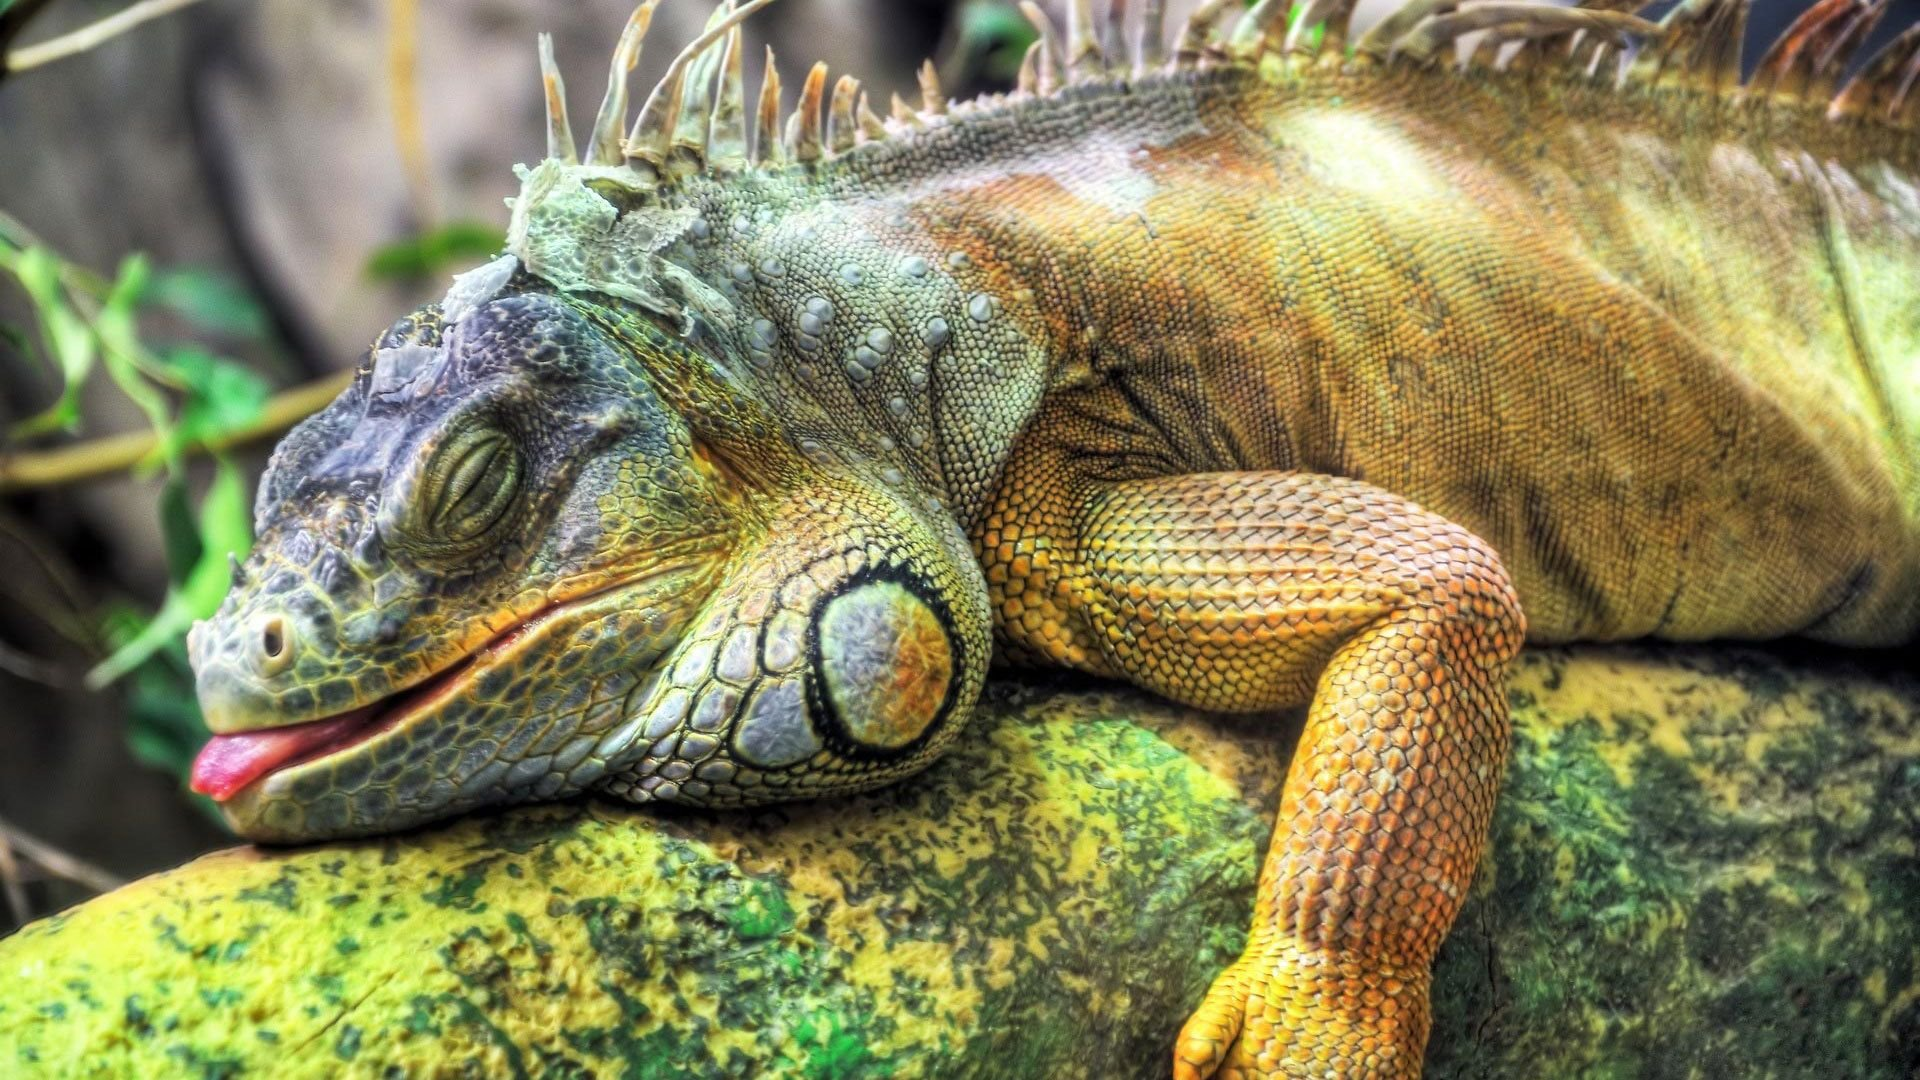 Download hd 1080p Iguana desktop wallpaper ID:380911 for free